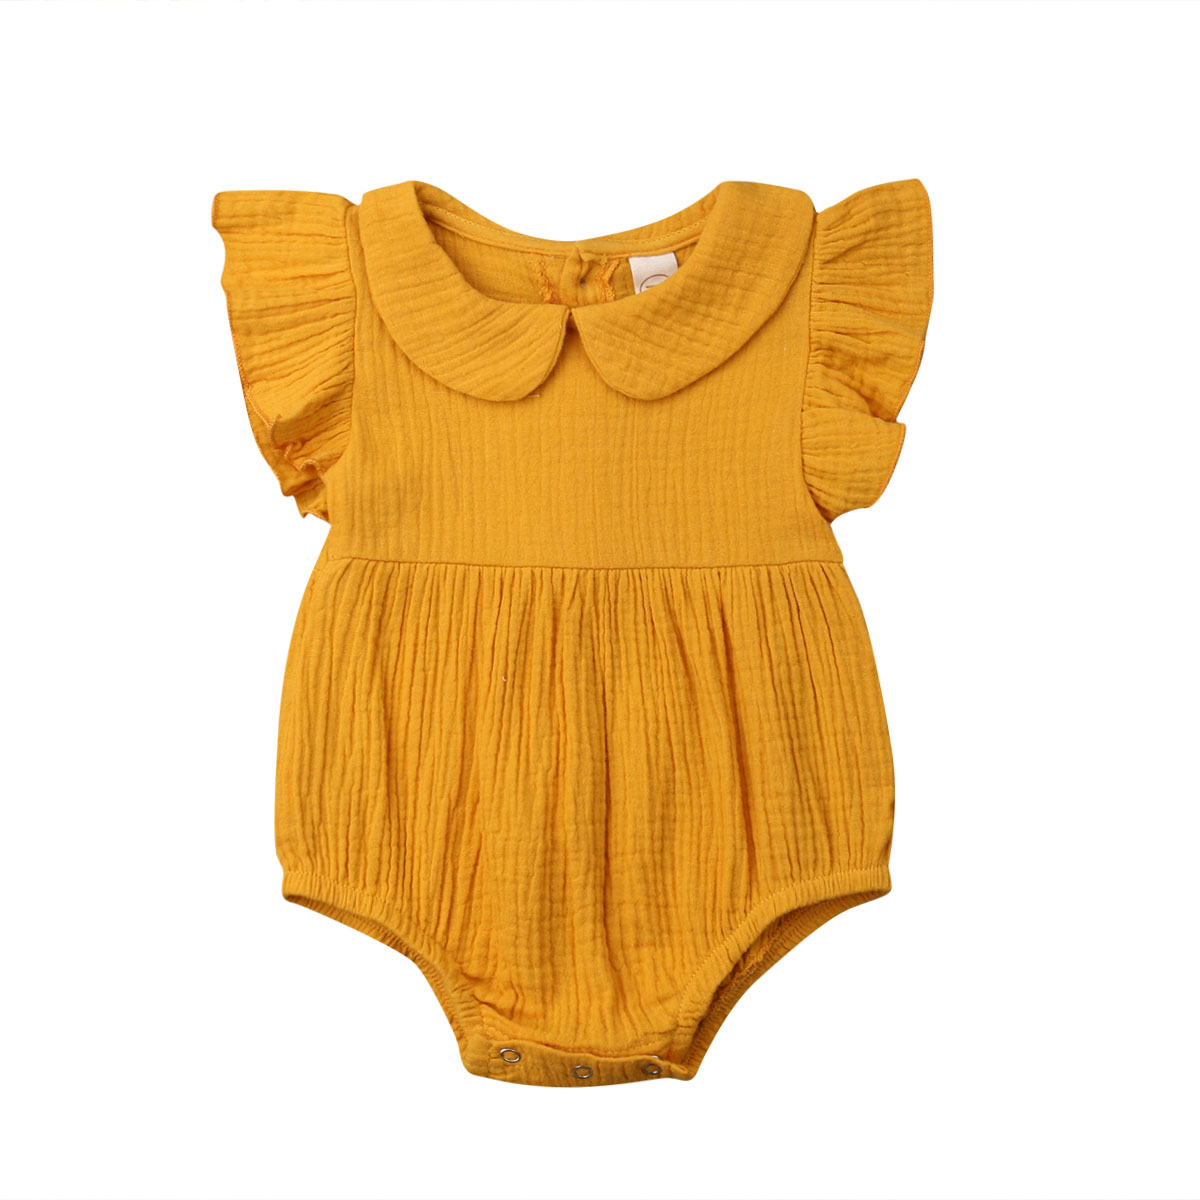 Baby Girls Jumpsuit Ruffles Sleeveless Romper Outfits Summer Jumpsuit Clothes 0-24M